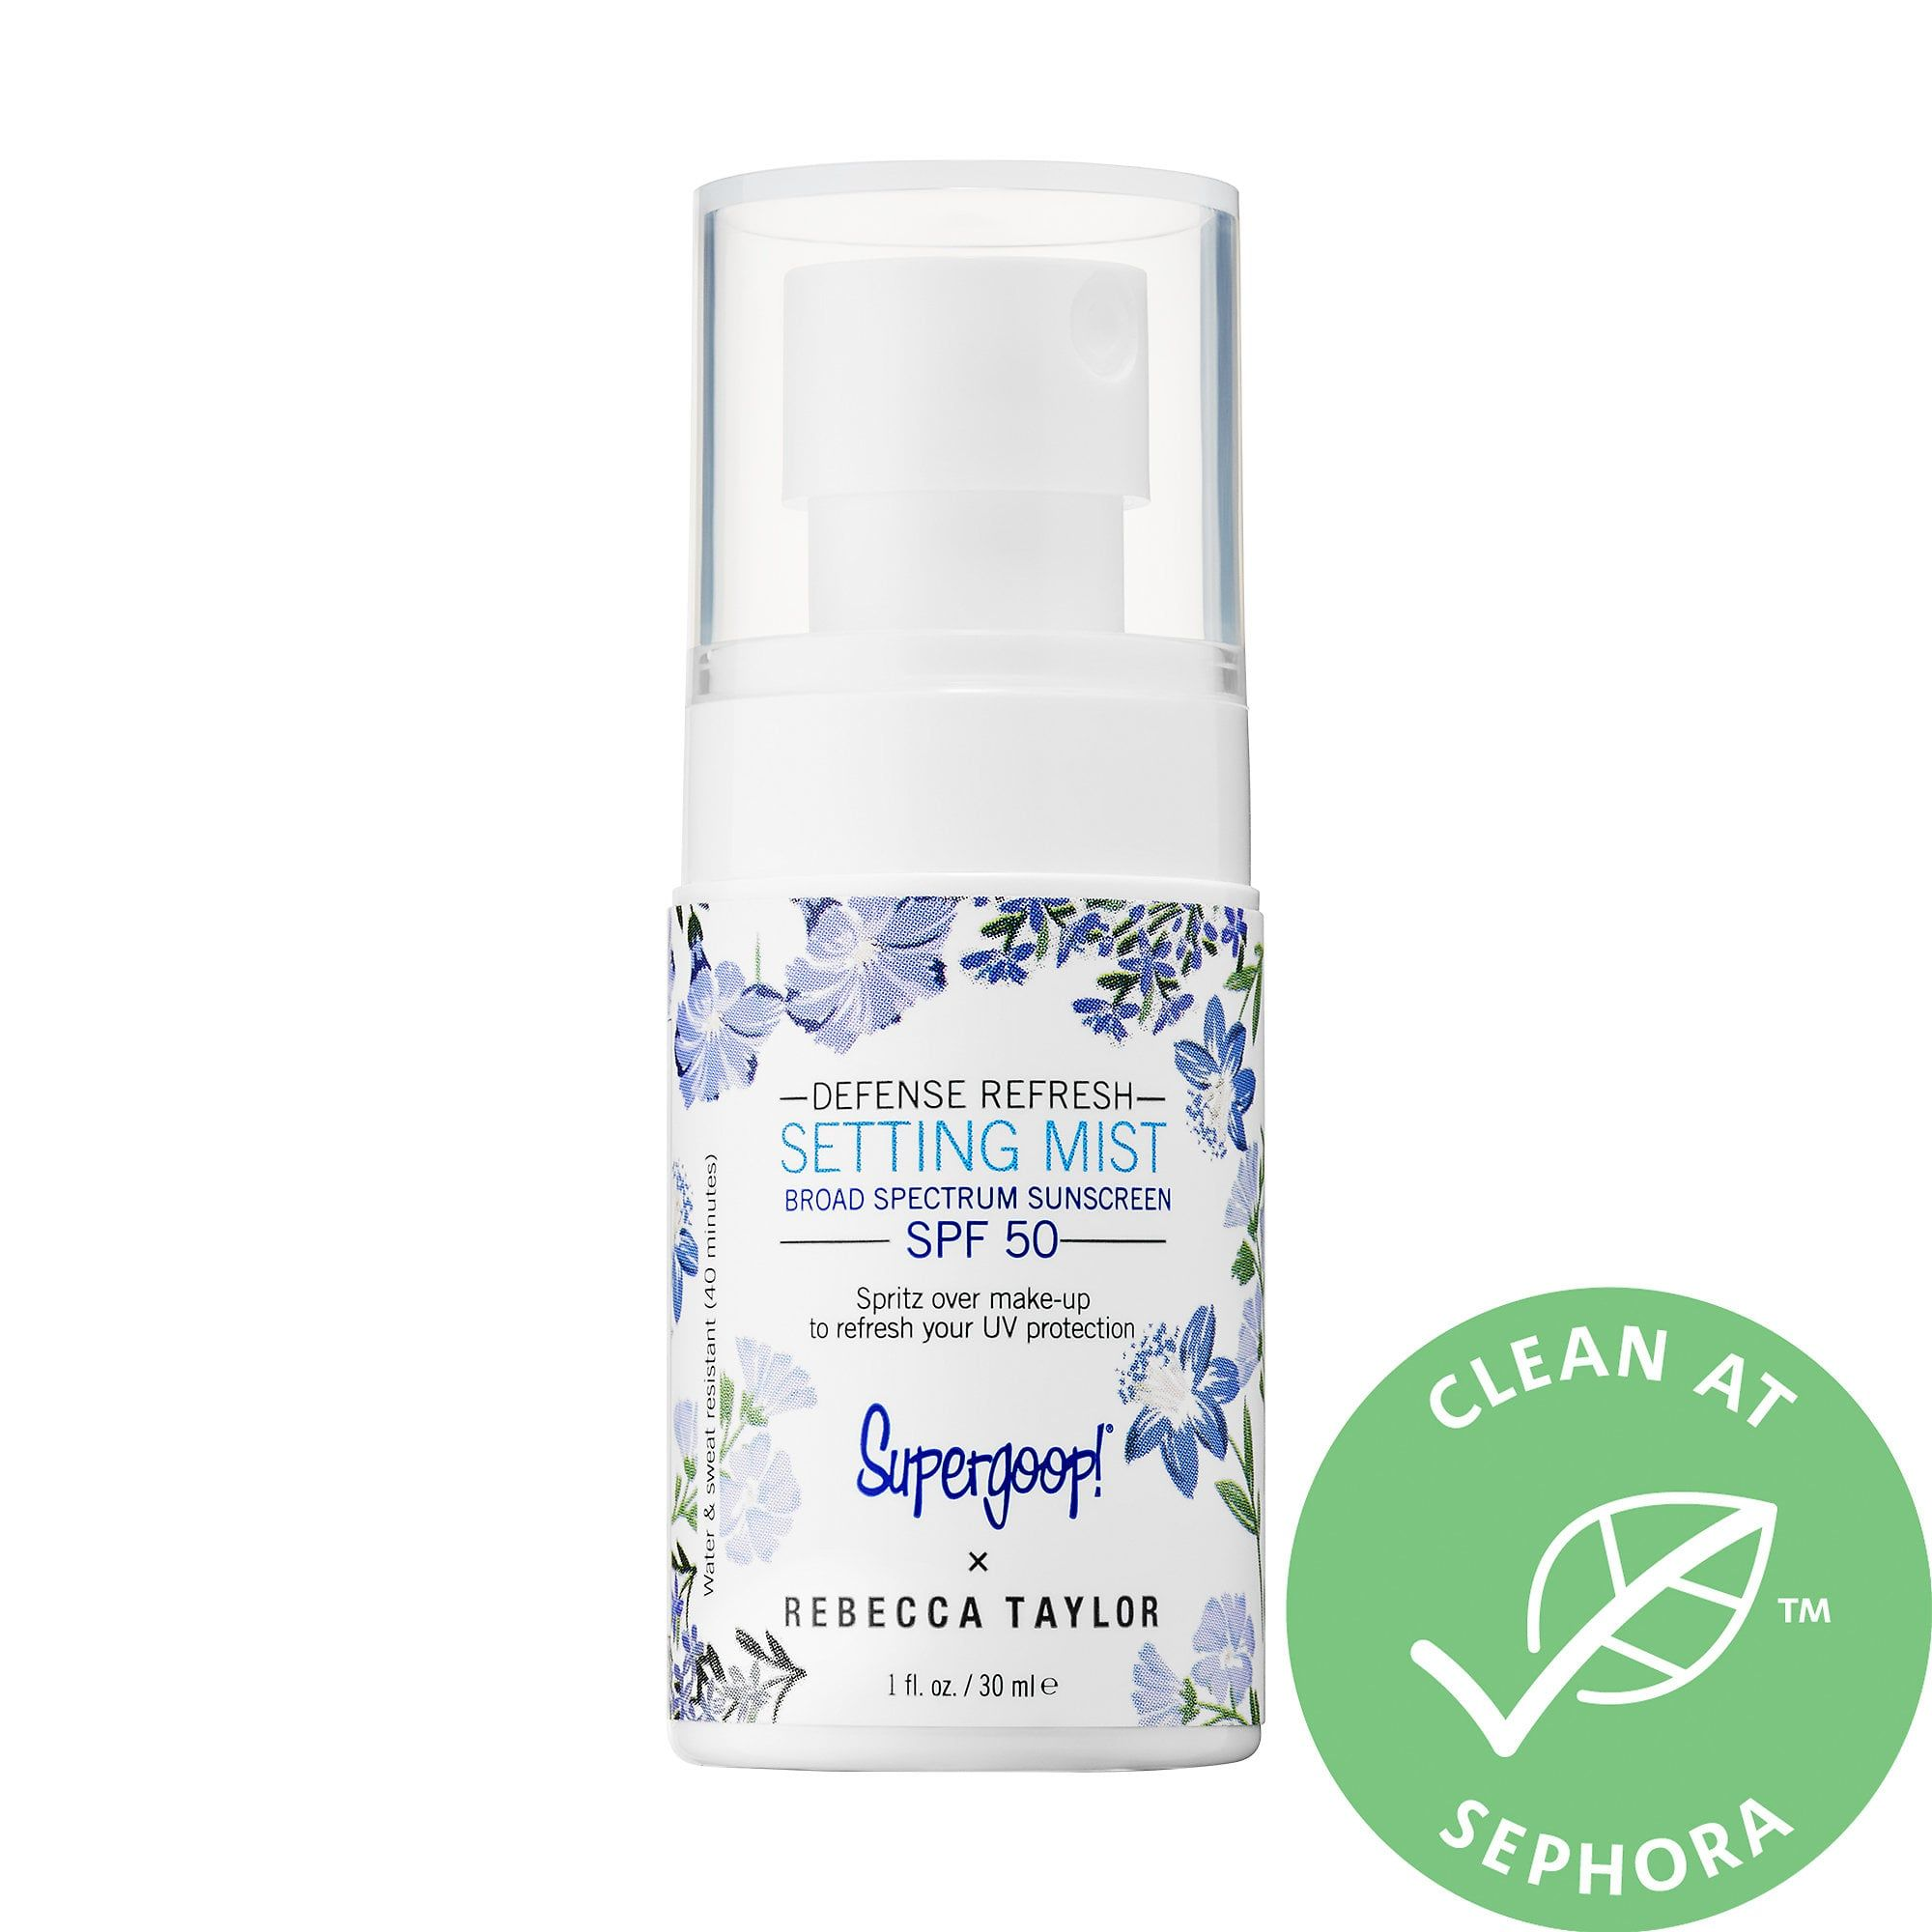 Supergoop! Supergoop! X Rebecca Taylor Defense Refresh